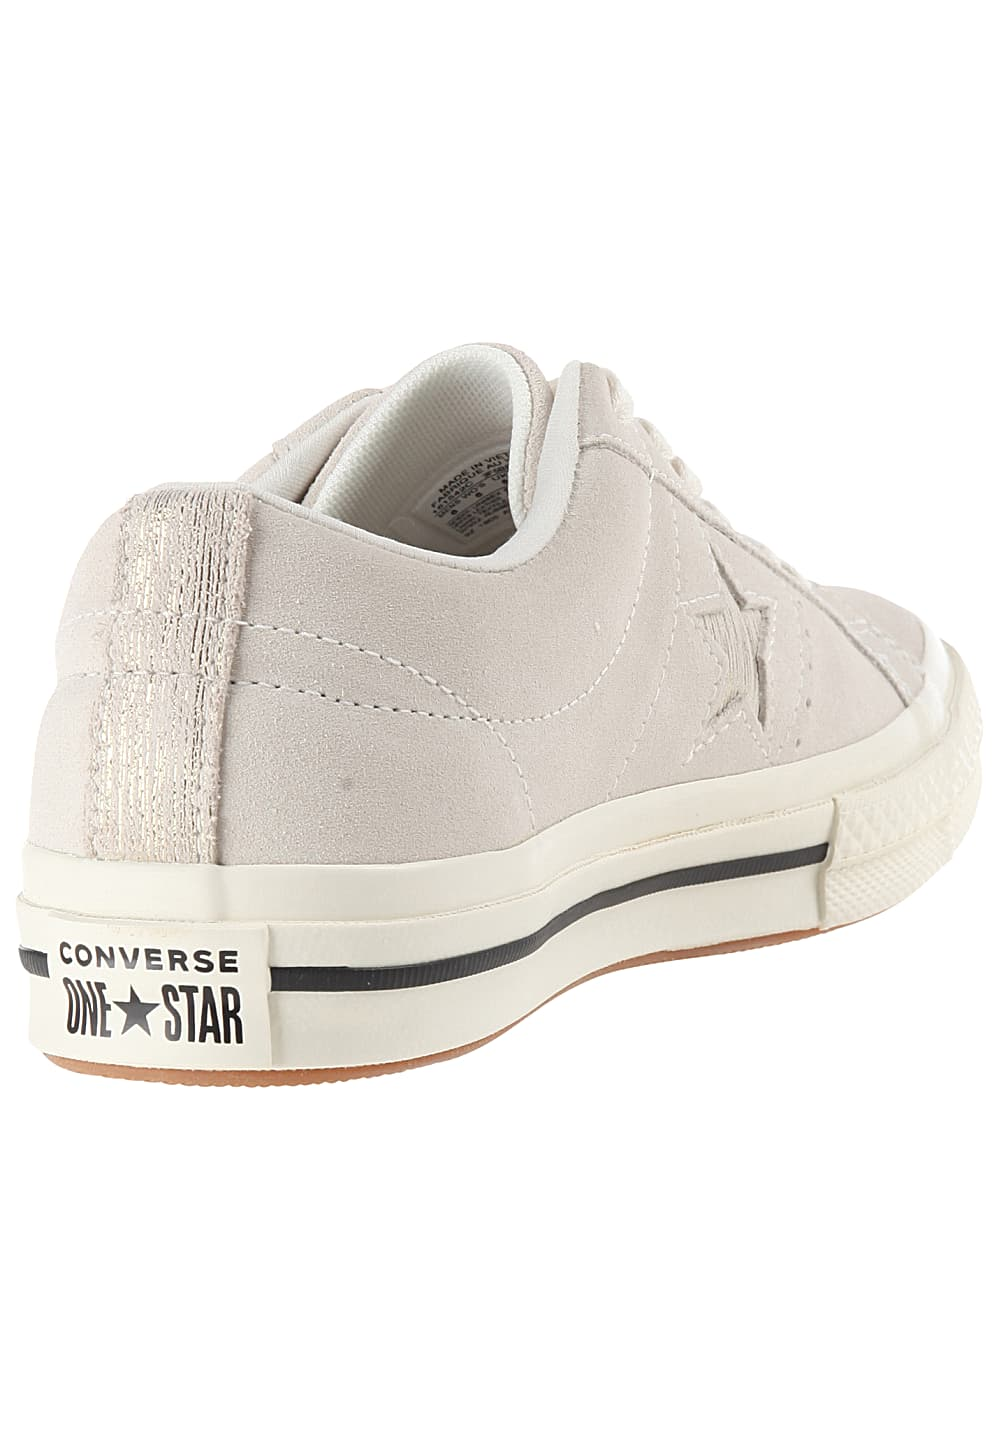 Converse One Star Ox - Sneakers for Women - Beige - Planet Sports 66b5159ab